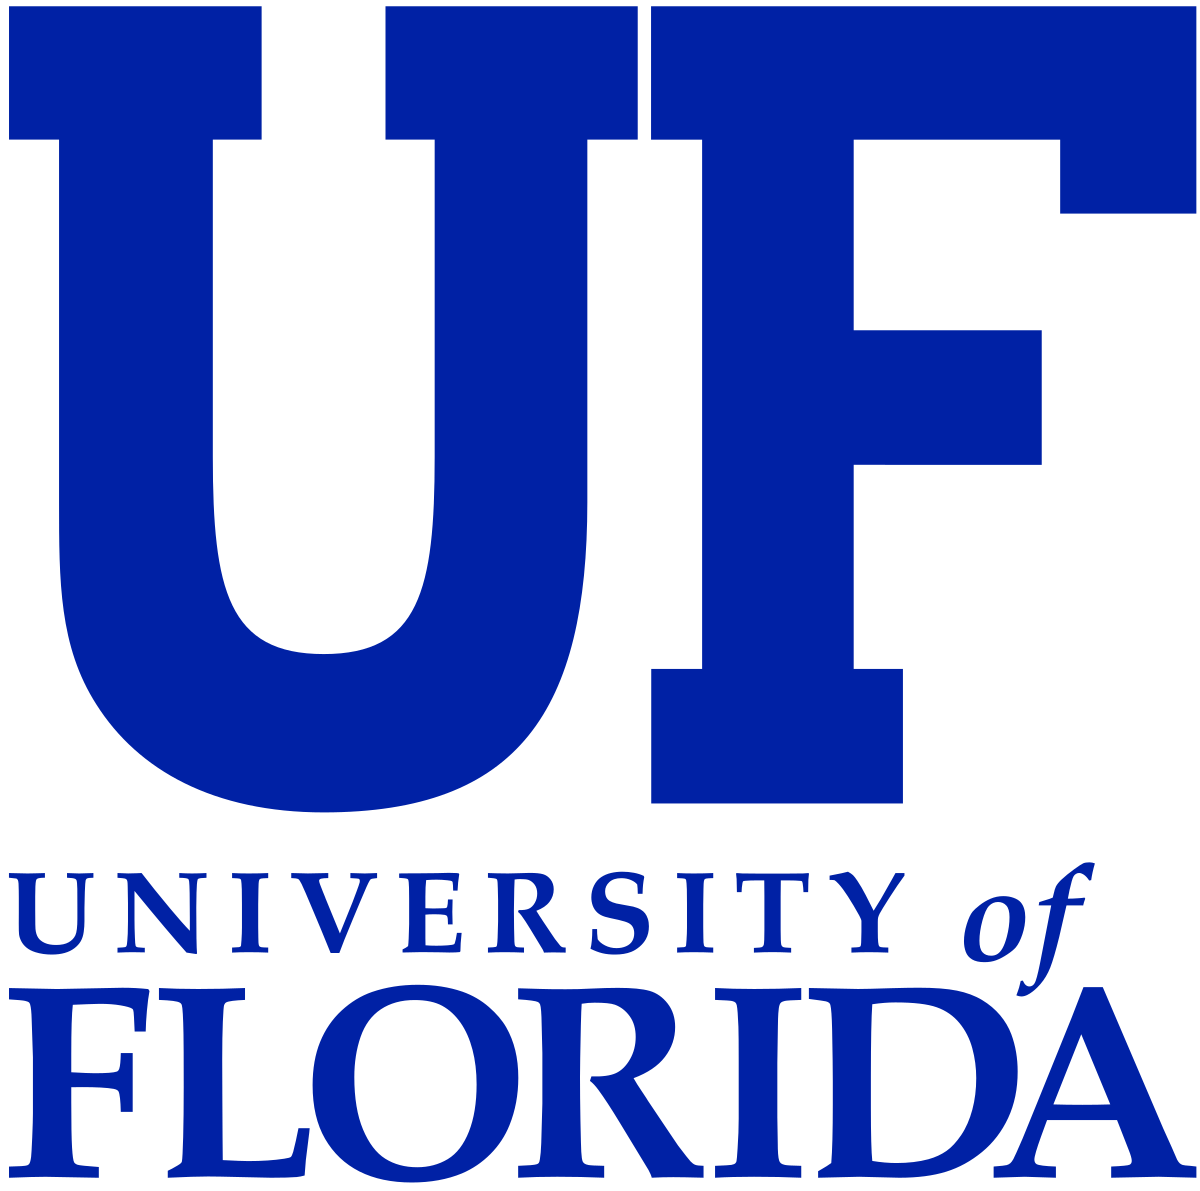 Athletic association wikipedia . University of florida logo png vector library library